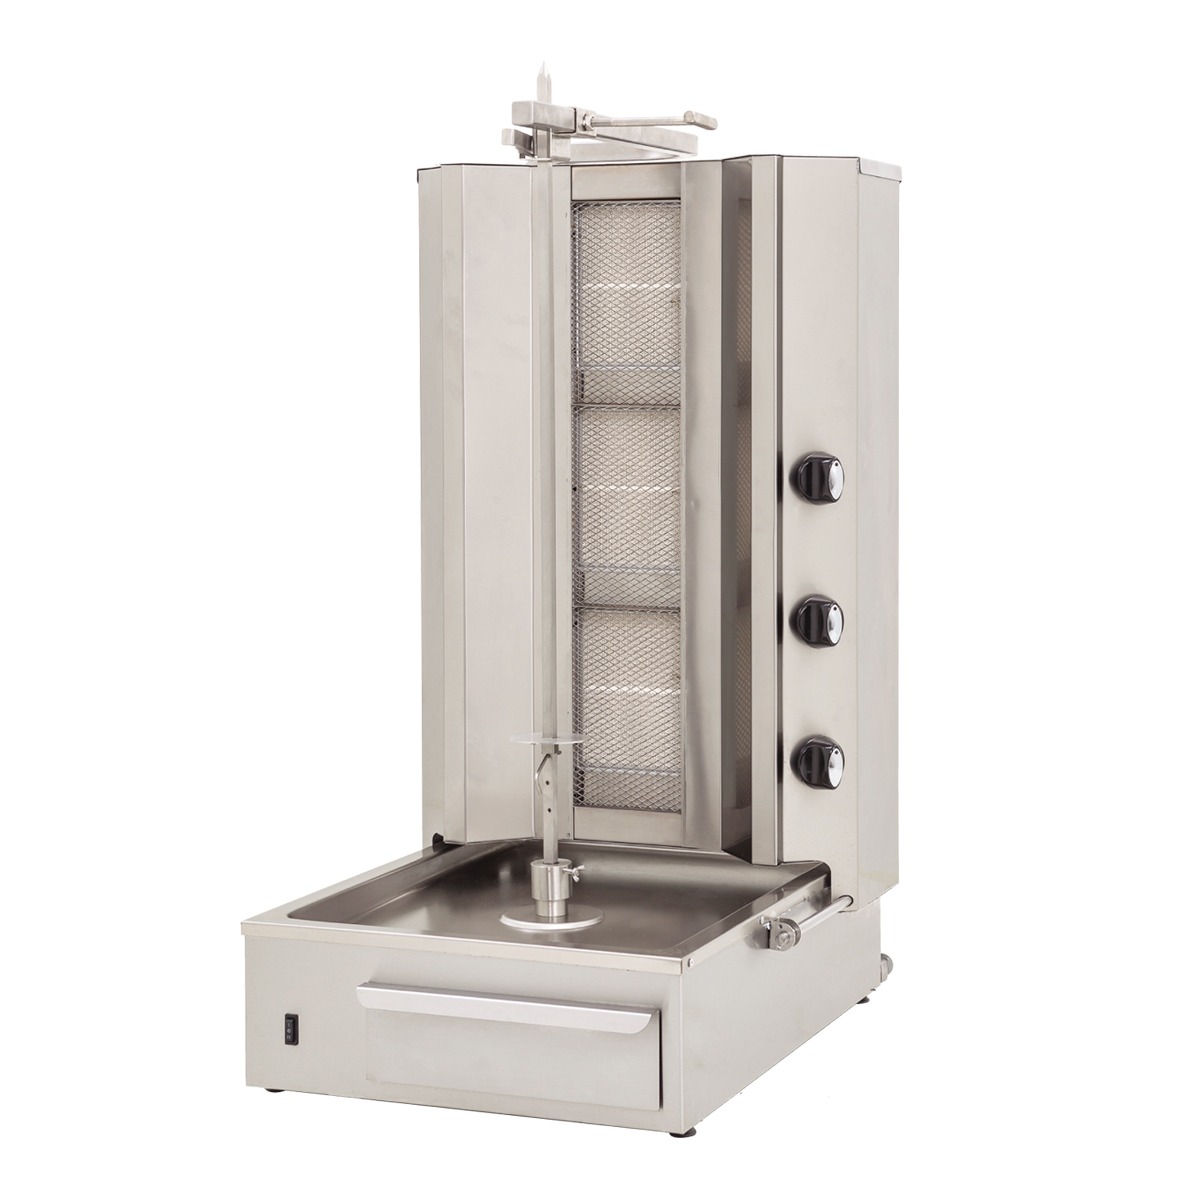 Doner Machine - Bottom Motor 3 Vertical Burner -Gas